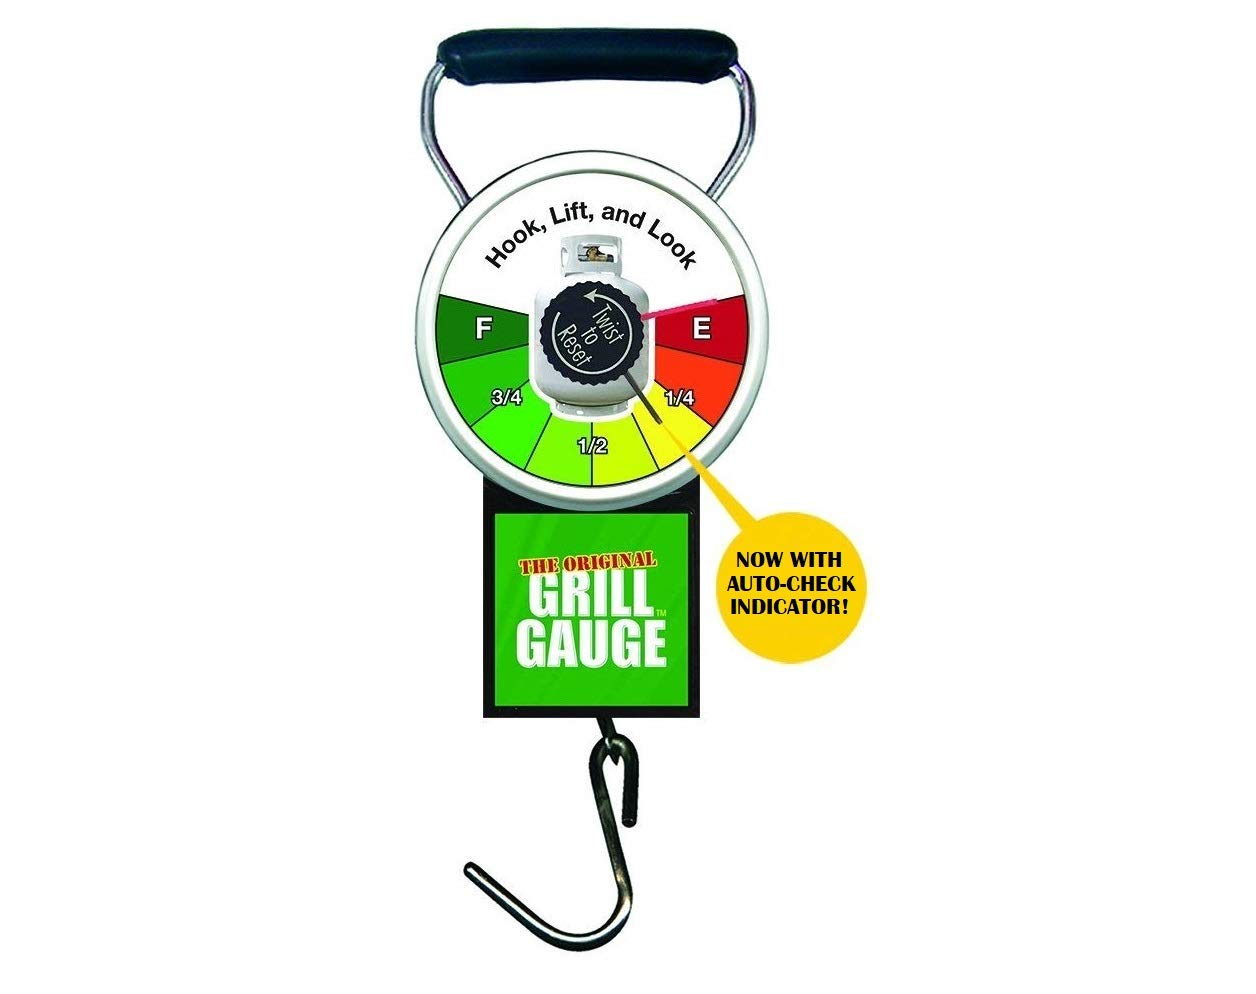 Grill Gauge Original Propane Tank Scale for BBQ Grill, Patio Heater, RV Camper - Improved Design with Easy Lift Indicator - Works on Standard 15/20 lb Labelled Exchange Tanks by Grill Gauge